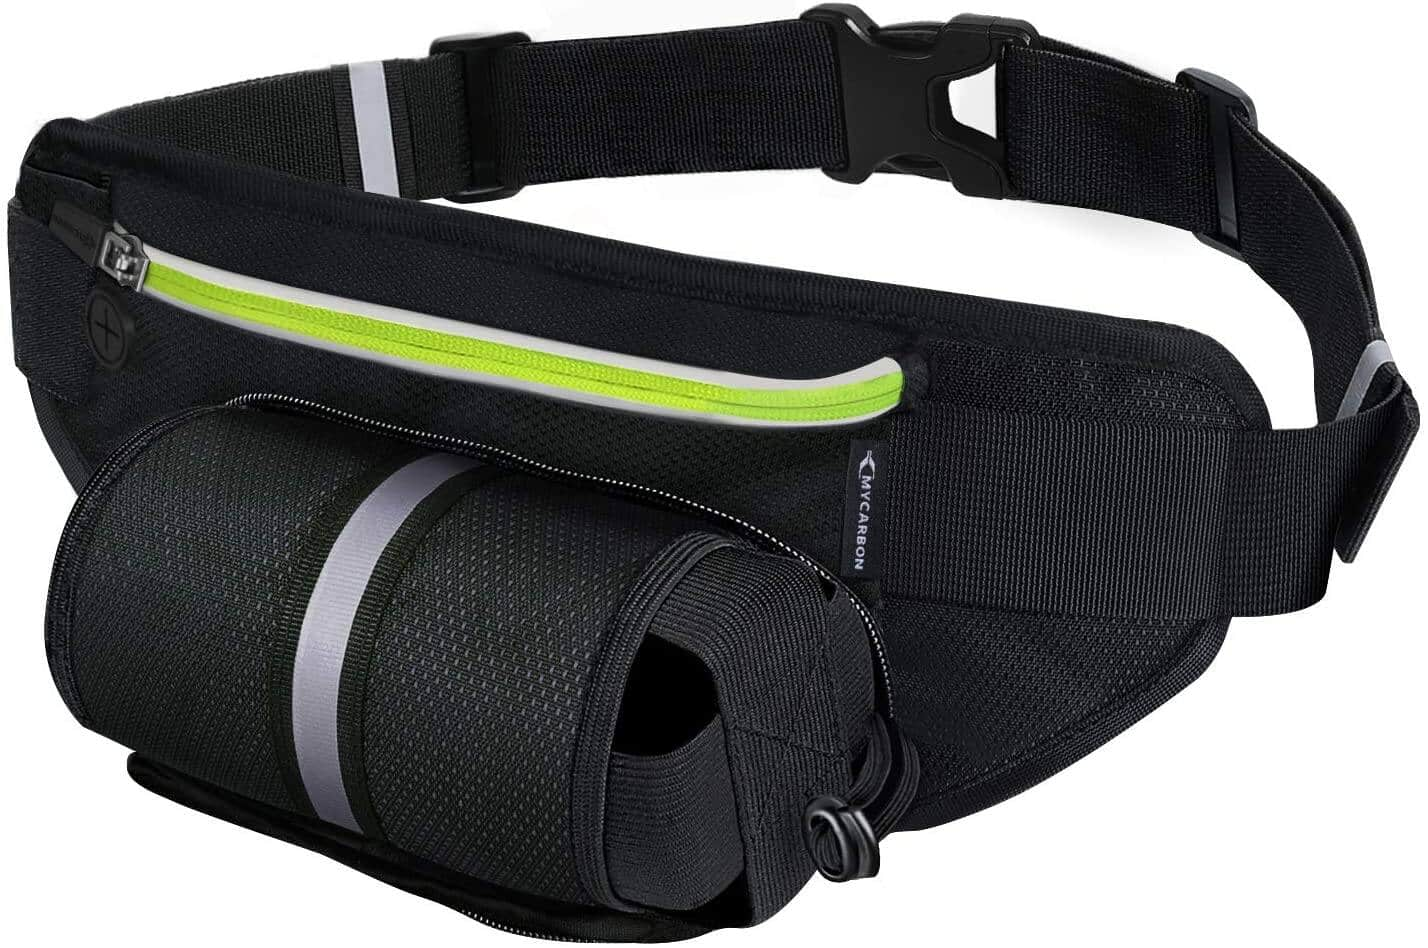 MYCARBON Waist Pack with Water Bottle Holder for Men and Women only $7.99  + FS with PRIME